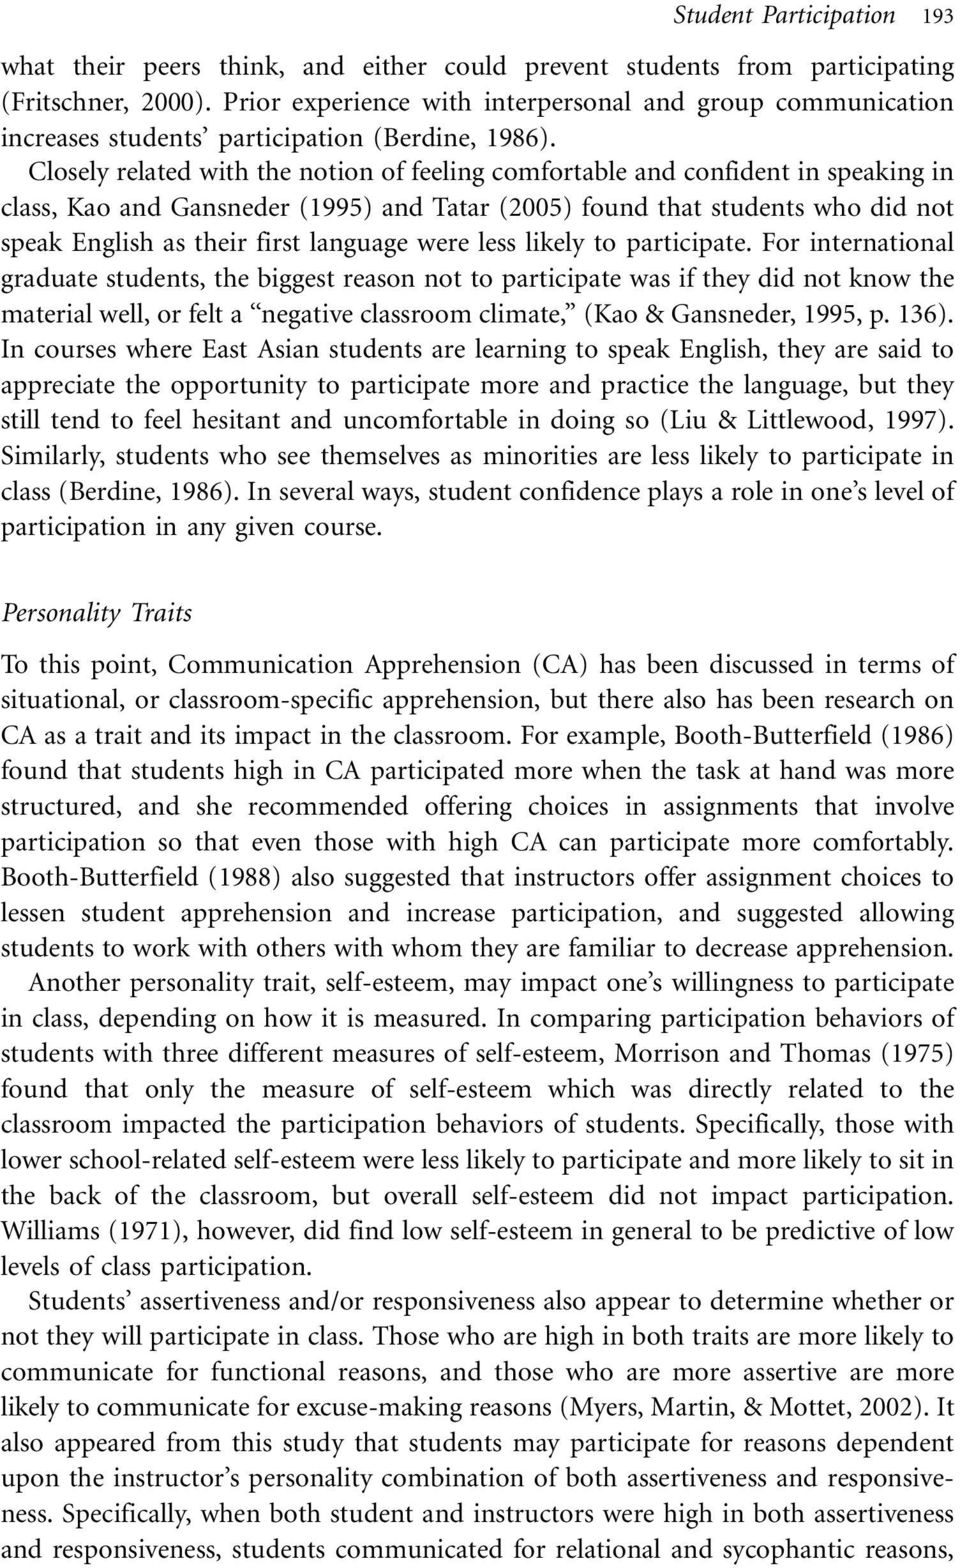 Closely related with the notion of feeling comfortable and confident in speaking in class, Kao and Gansneder (1995) and Tatar (2005) found that students who did not speak English as their first